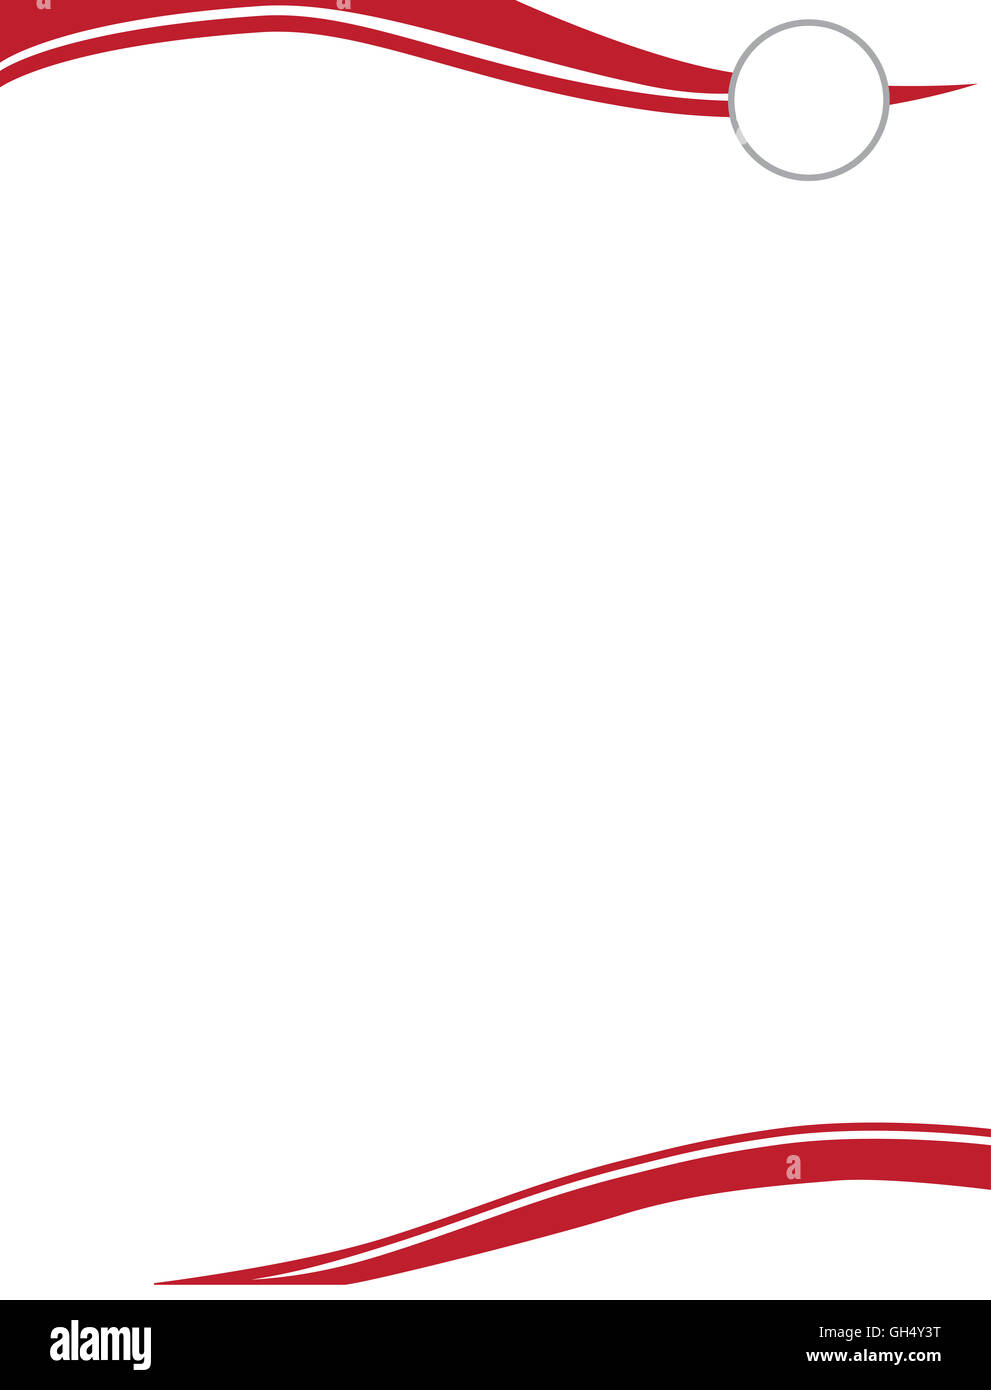 red swirl letterhead template with circle for logo stock photo